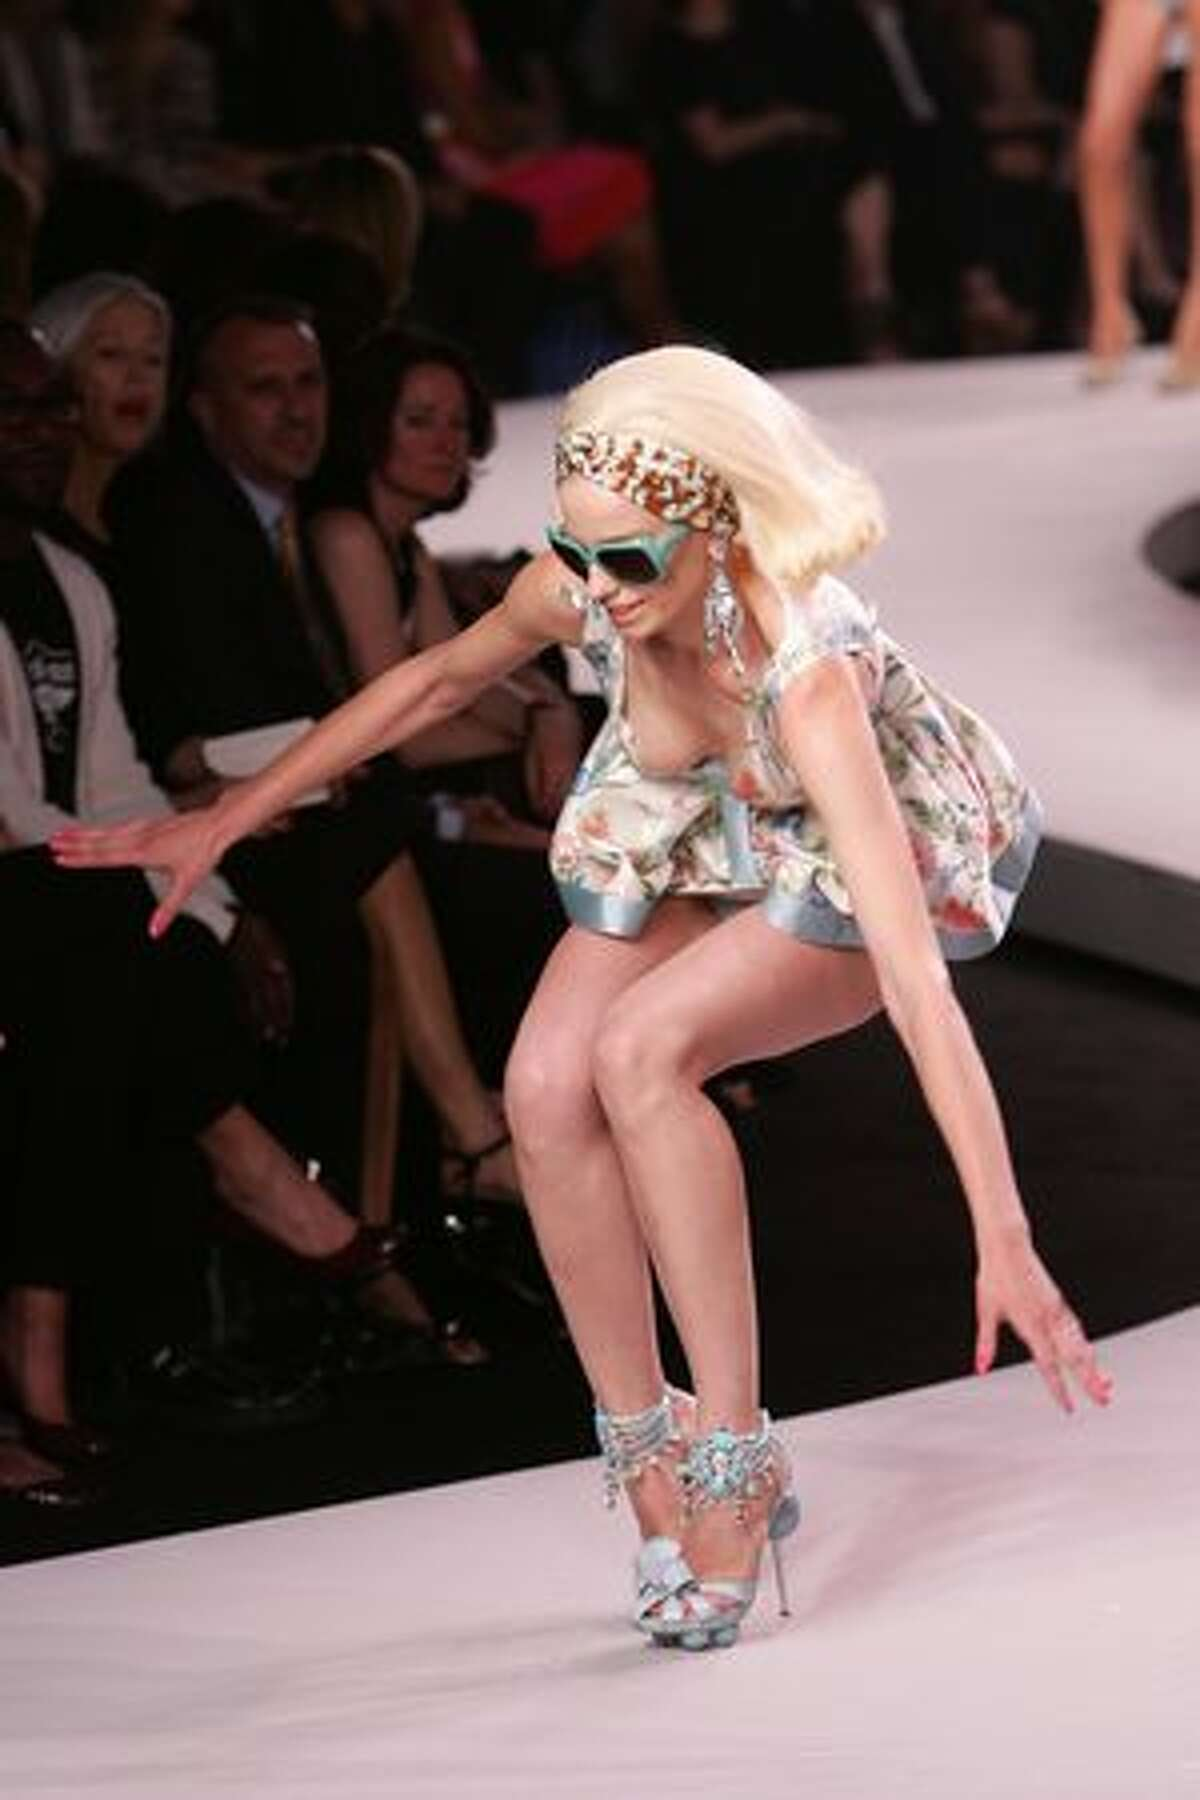 A model stumbles while walking the runway at the Dior 2008 Cruise Collection fashion show on May 14, 2007 in New York City.